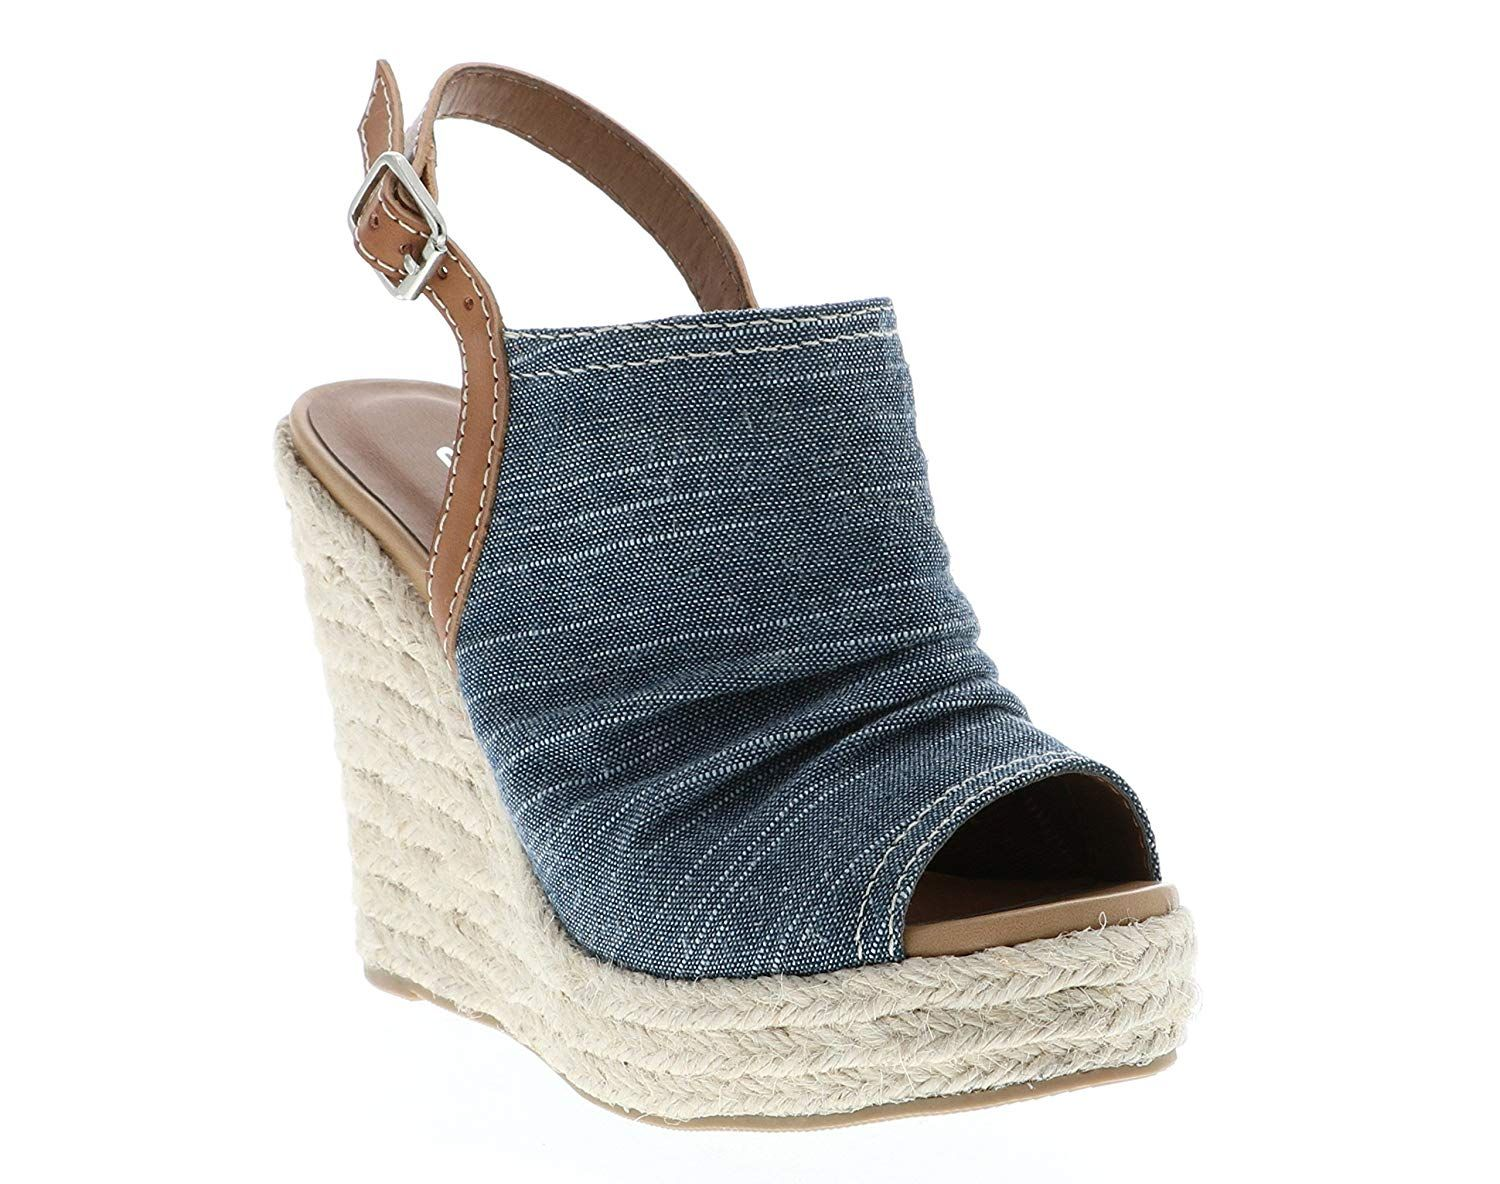 6fc4bbb4c417 Soda Women s Open Toe Ruched Canvas Espadrille Platform Wedge. Soda is a  fashion shoe brand based in California. Soda offers a wide array of styles  ...